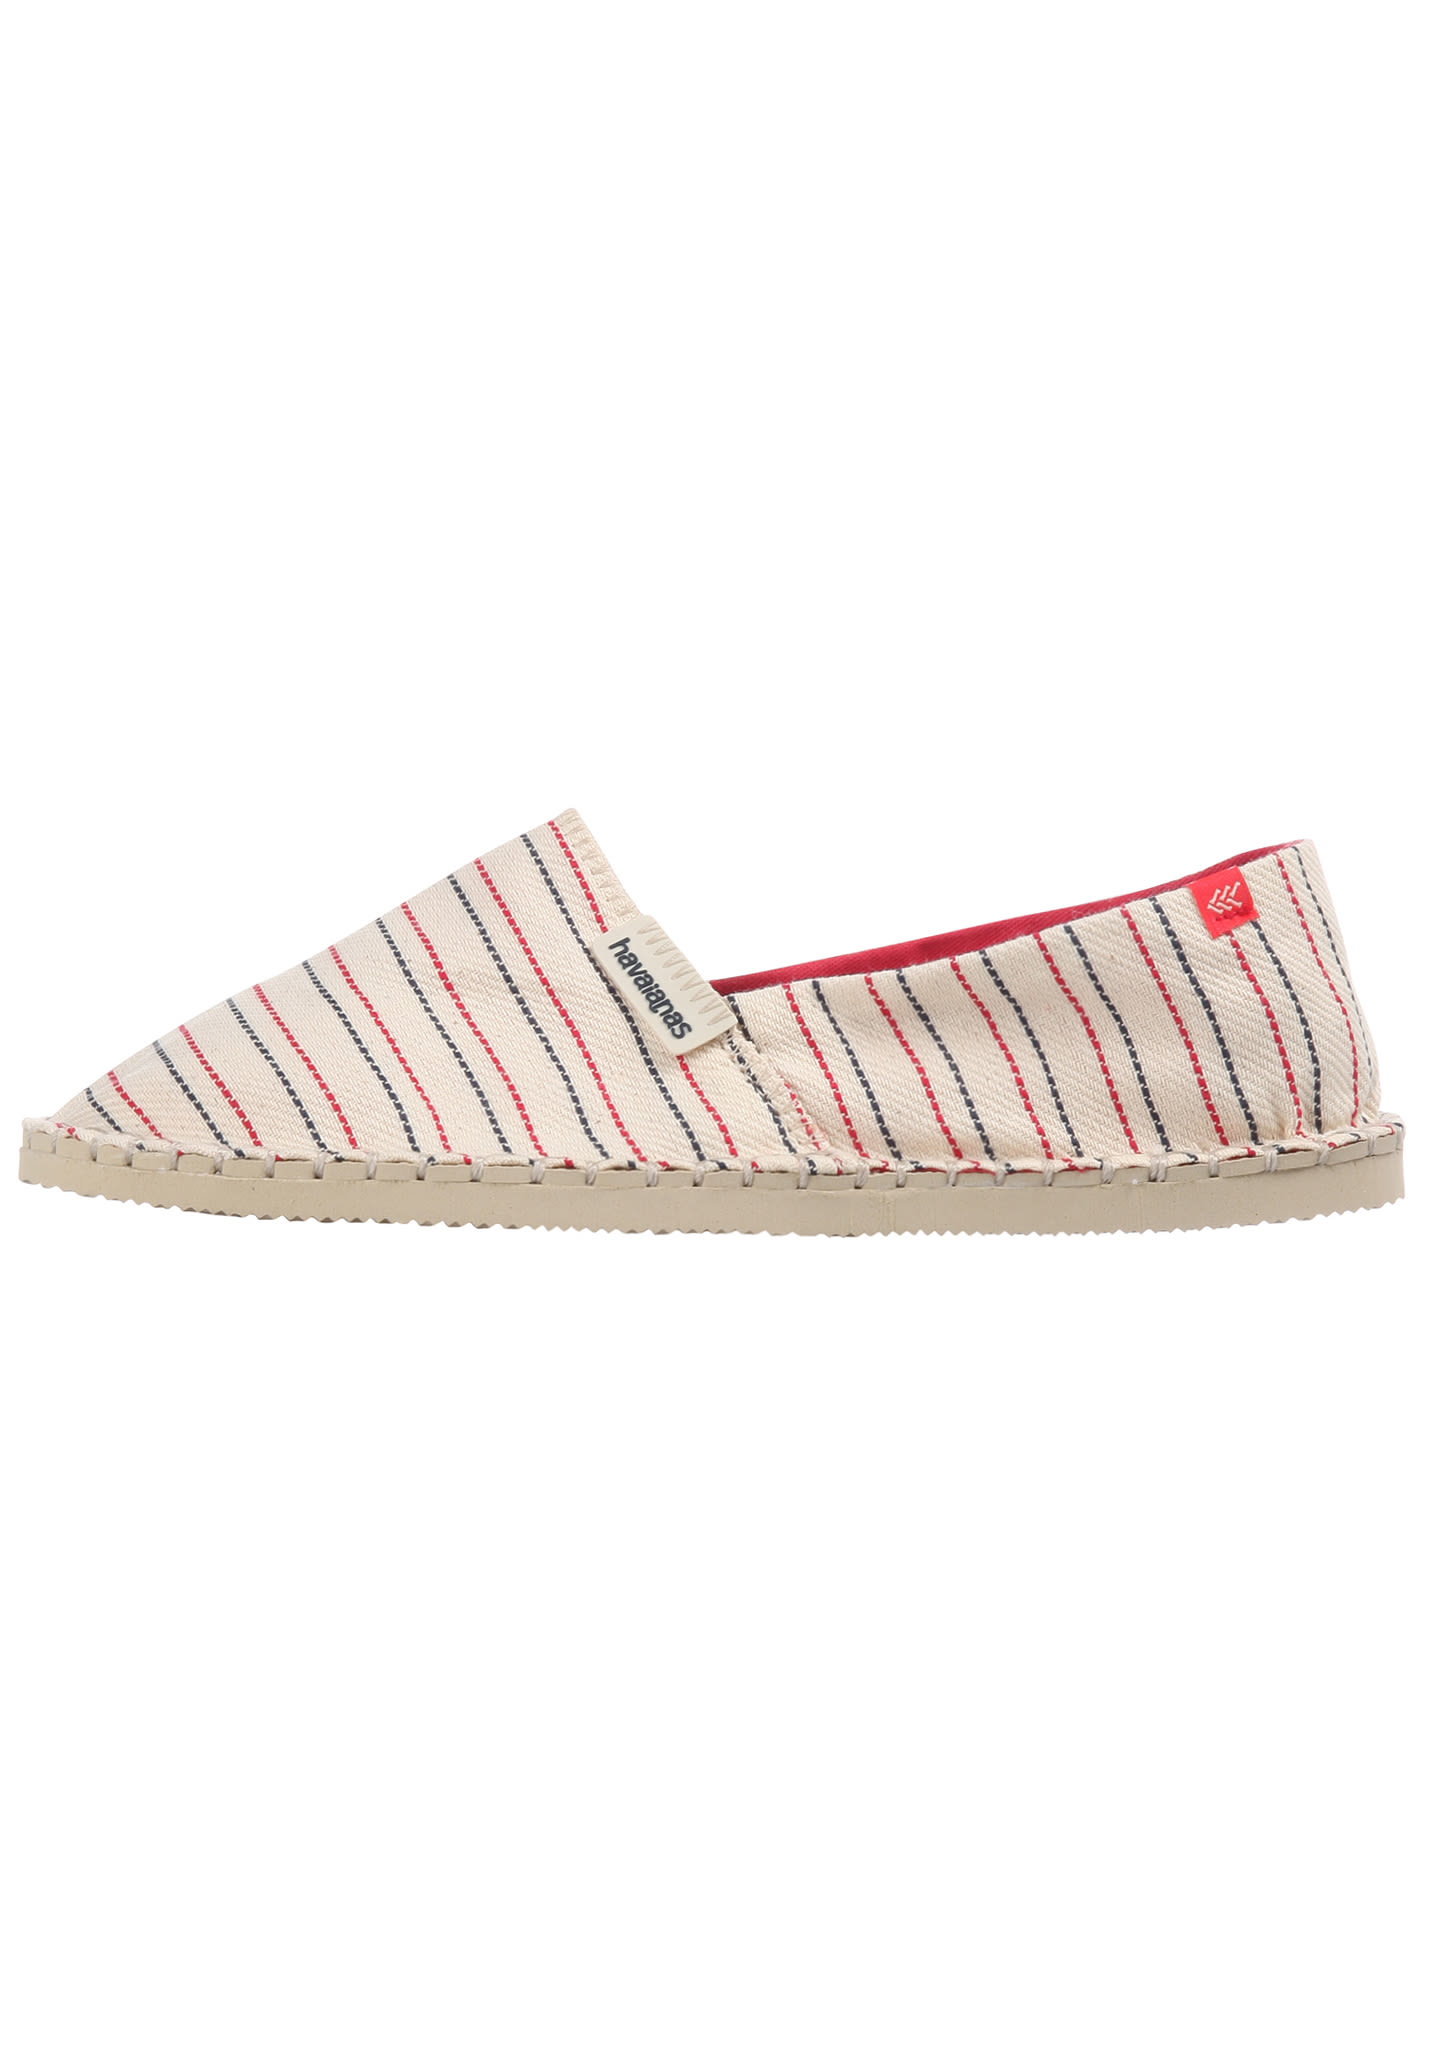 be8bc25ad7d77 HAVAIANAS Origine Classic III - Fashion Shoes for Women - Stripes - Planet  Sports